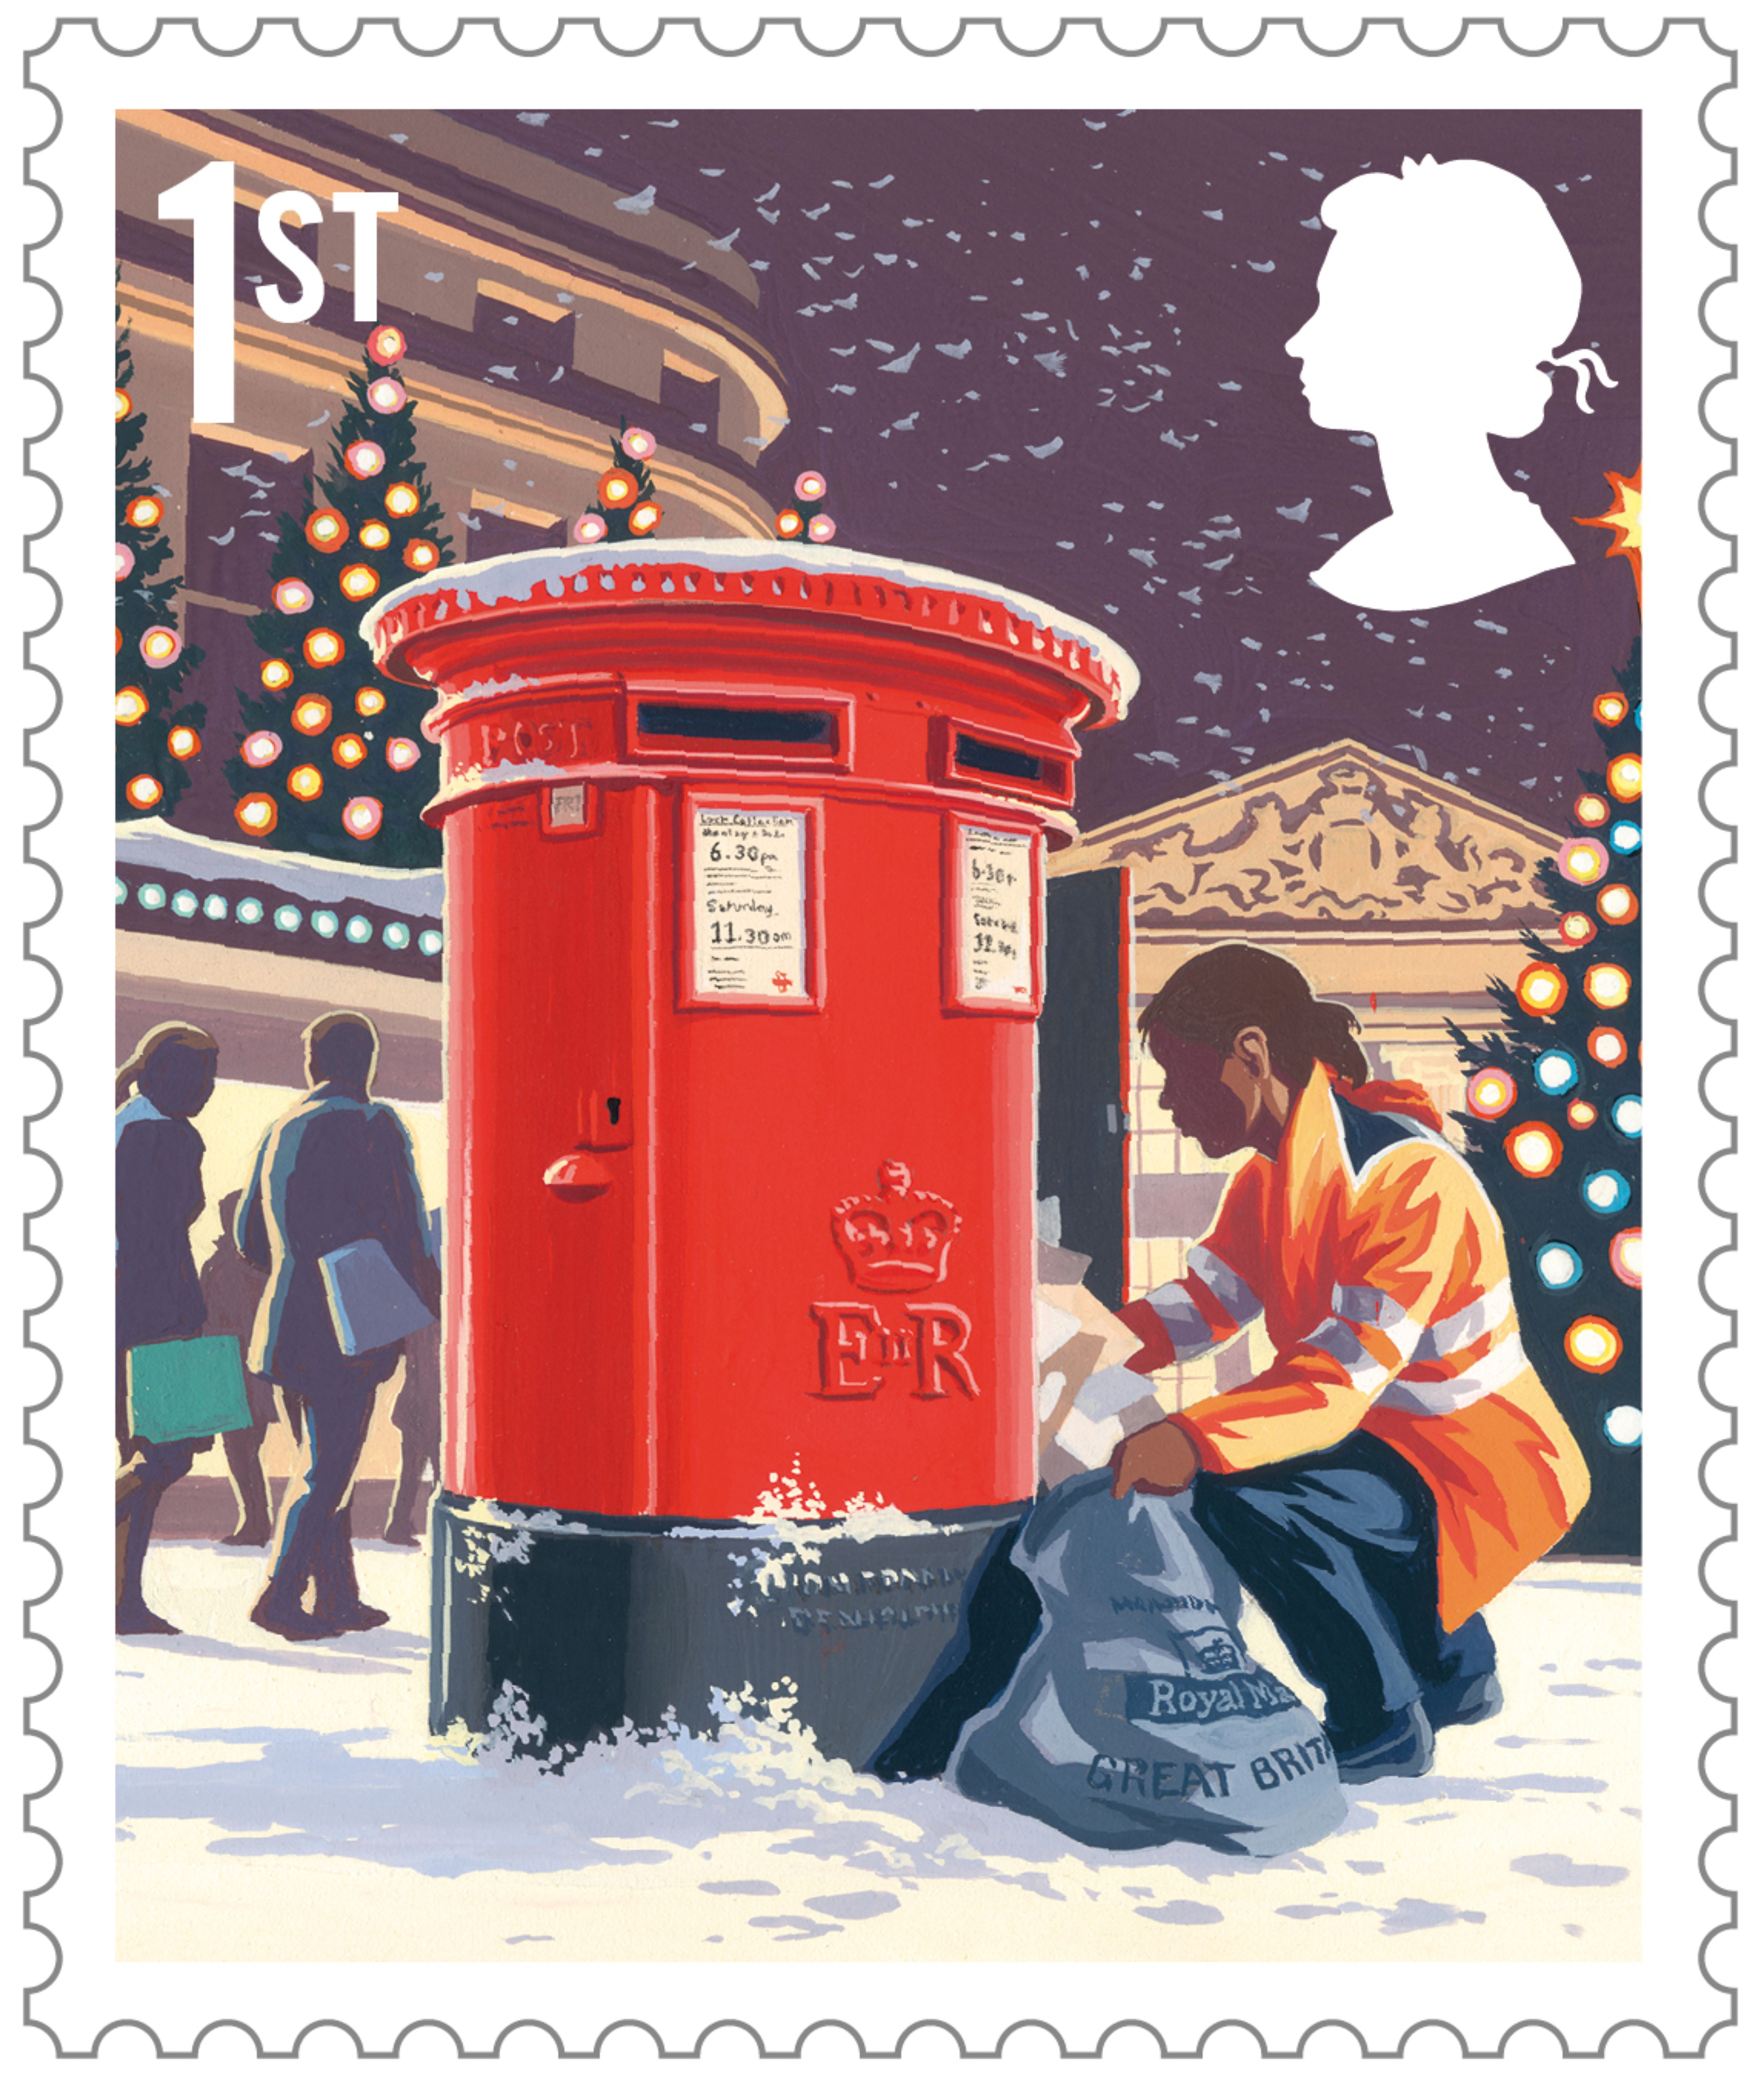 Christmas Stamp Designs Revealed By Royal Mail